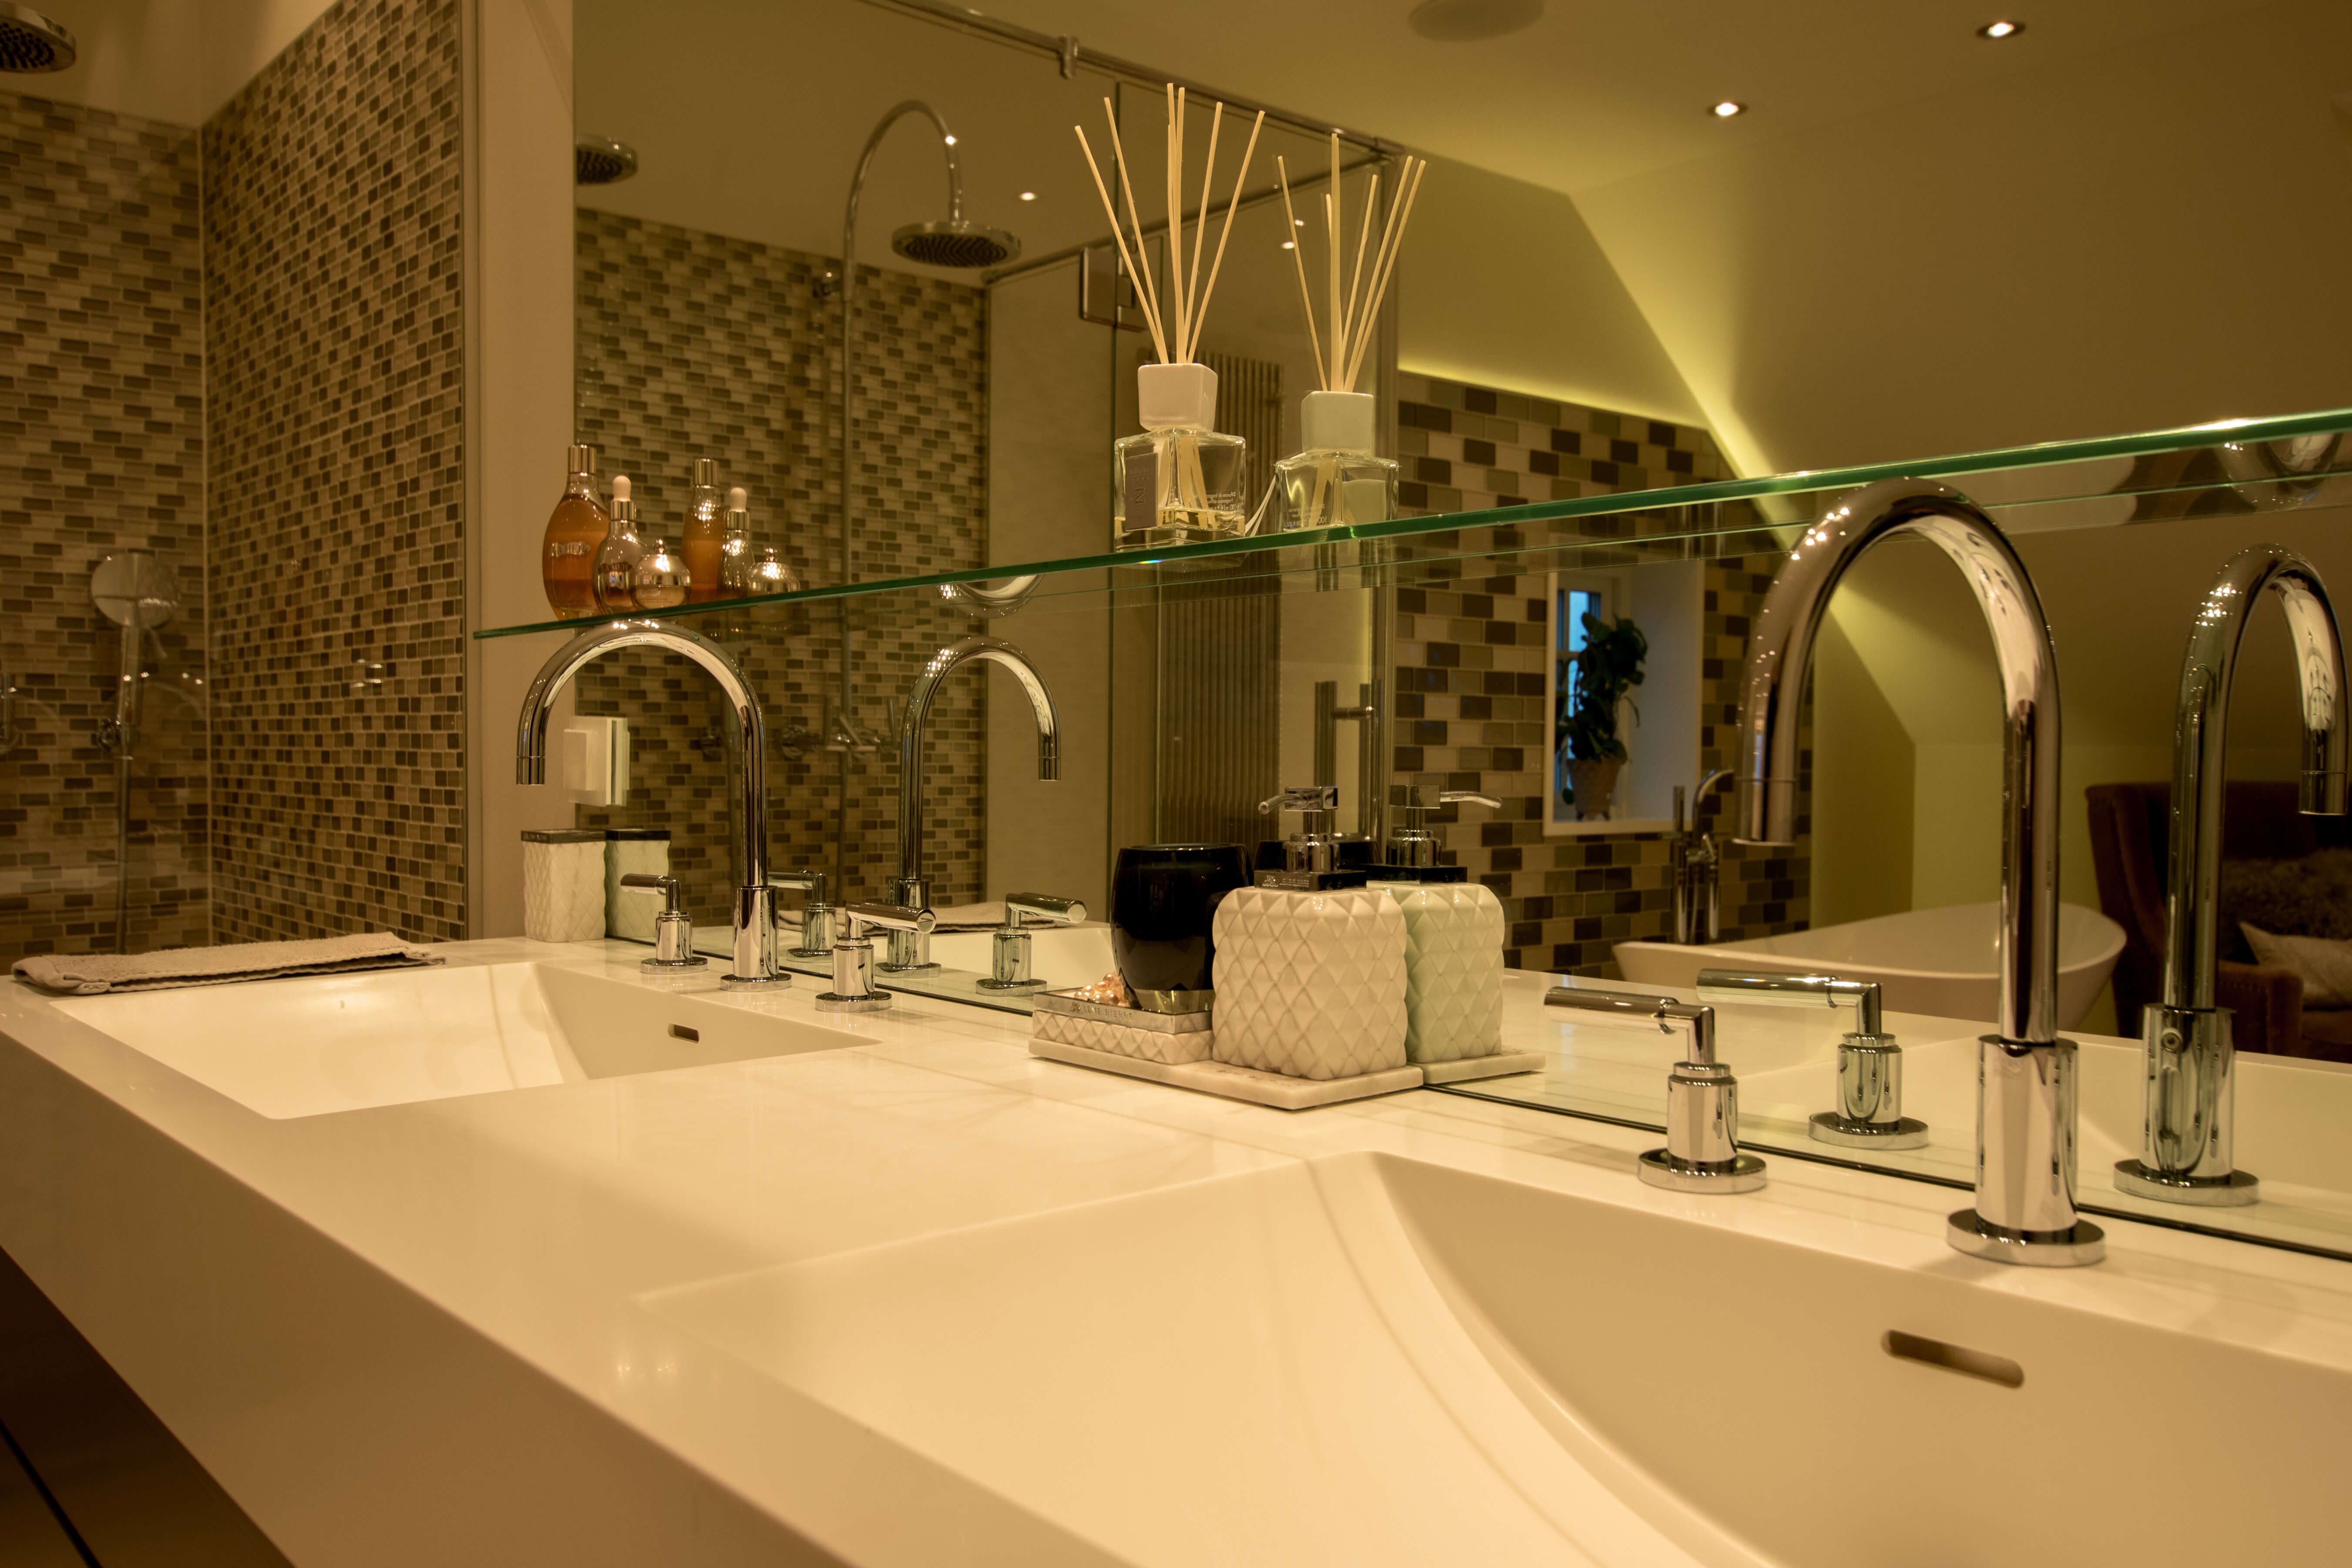 Double sink, big mirror and an inviting environment.